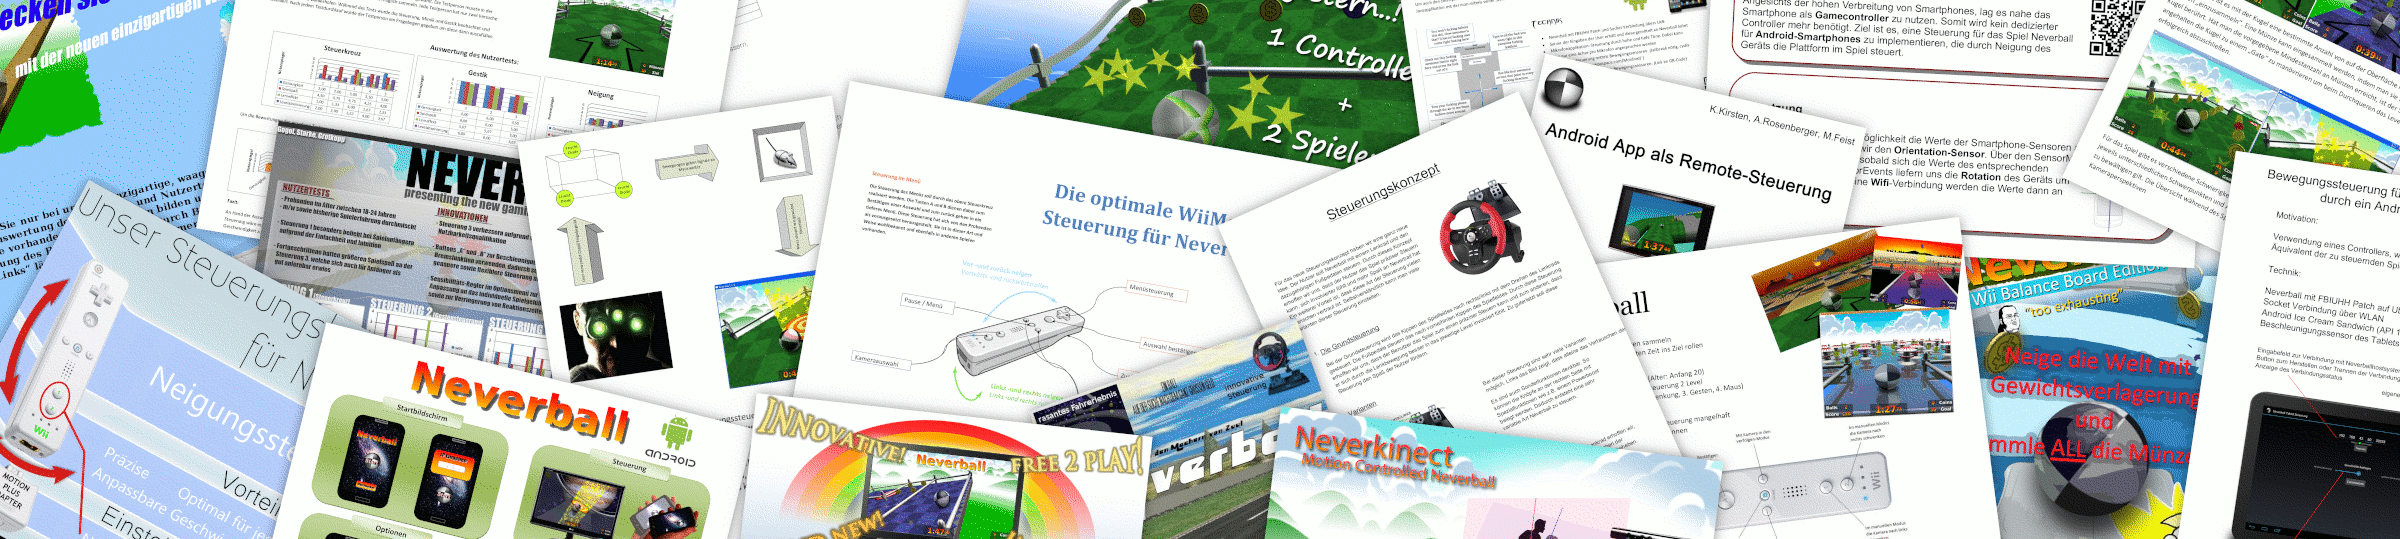 Collage of Neverball interaction posters